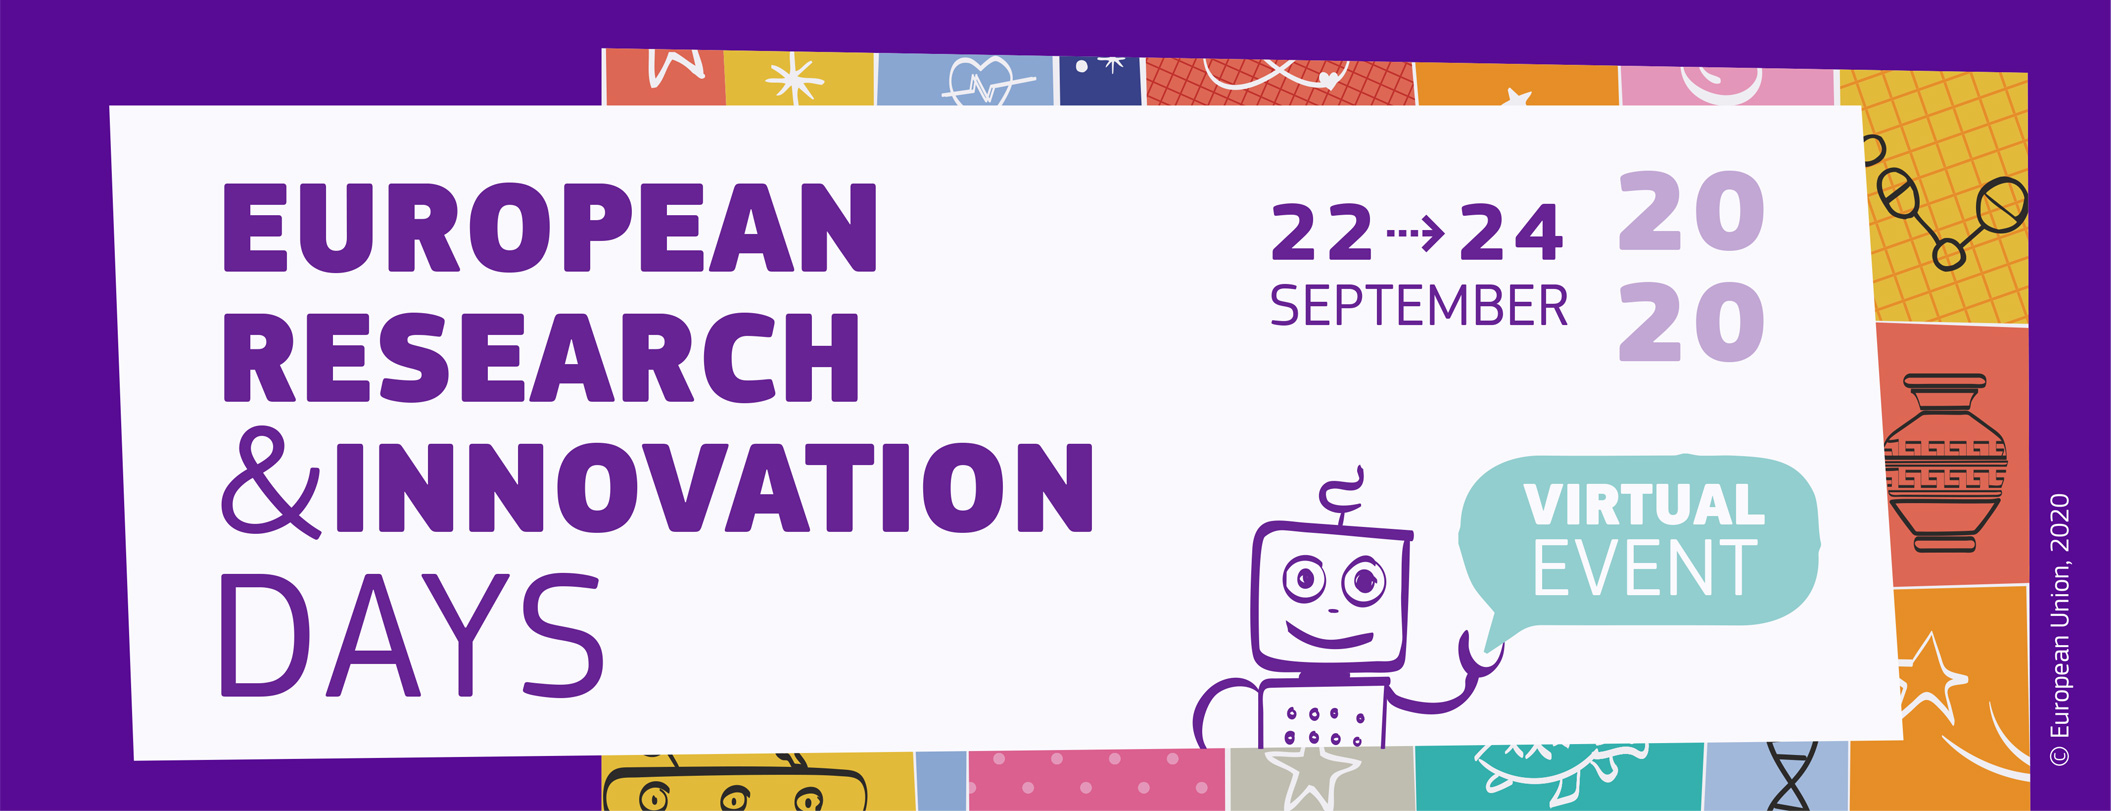 European Research and Innovation Days (22-24 septiembre 2020)